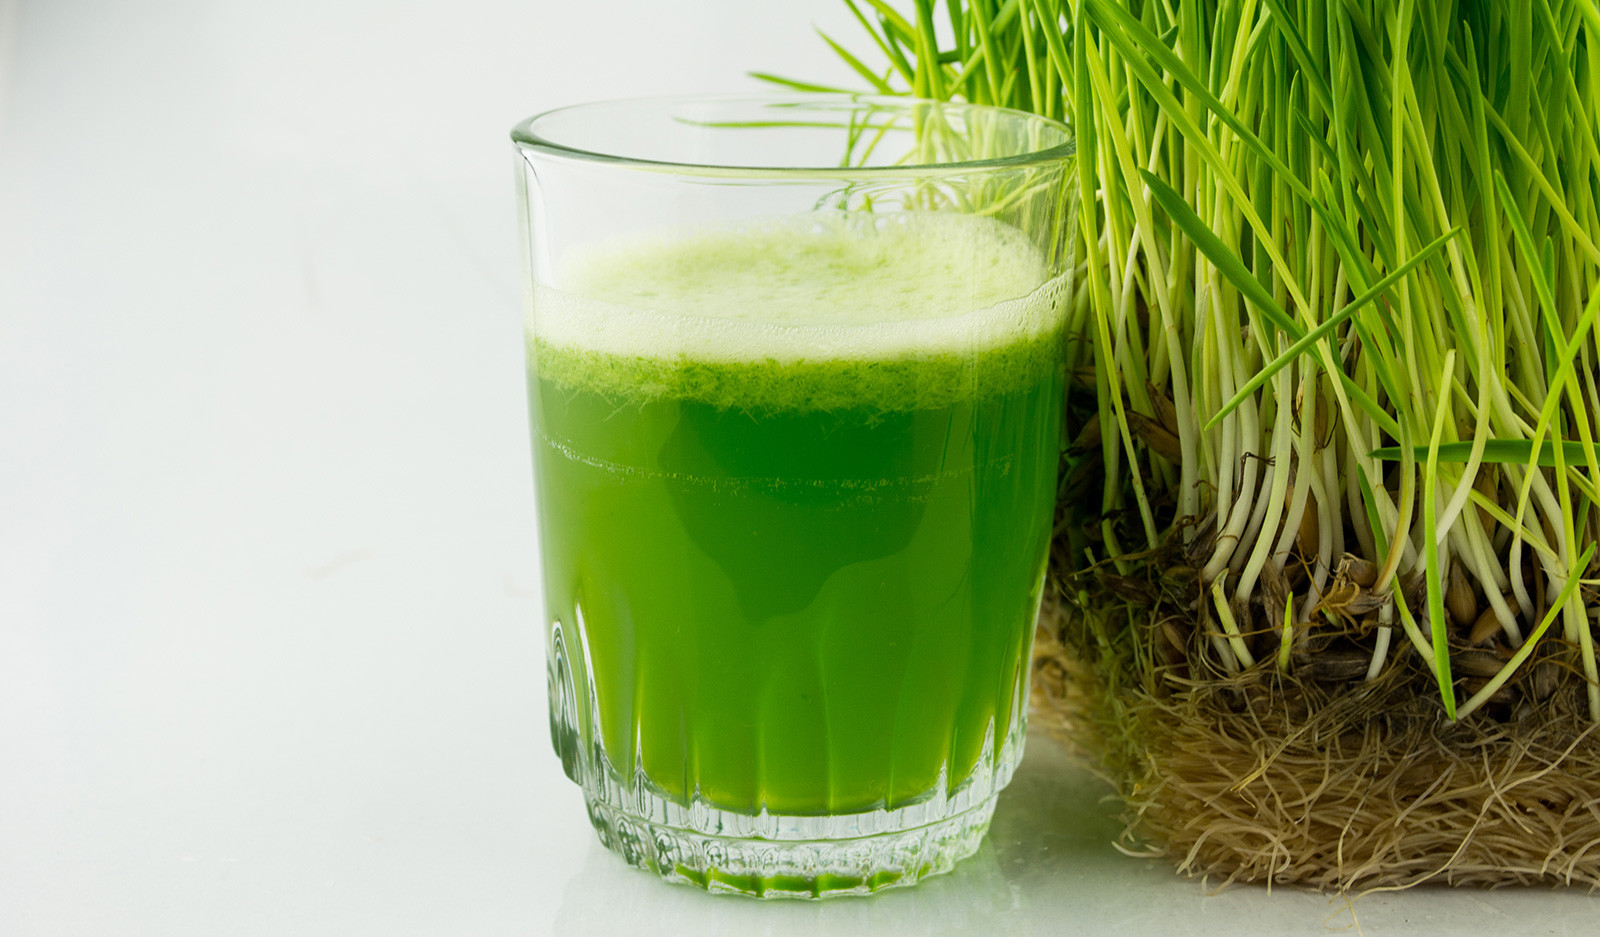 Organic, green wheat-grass juice in a glass.